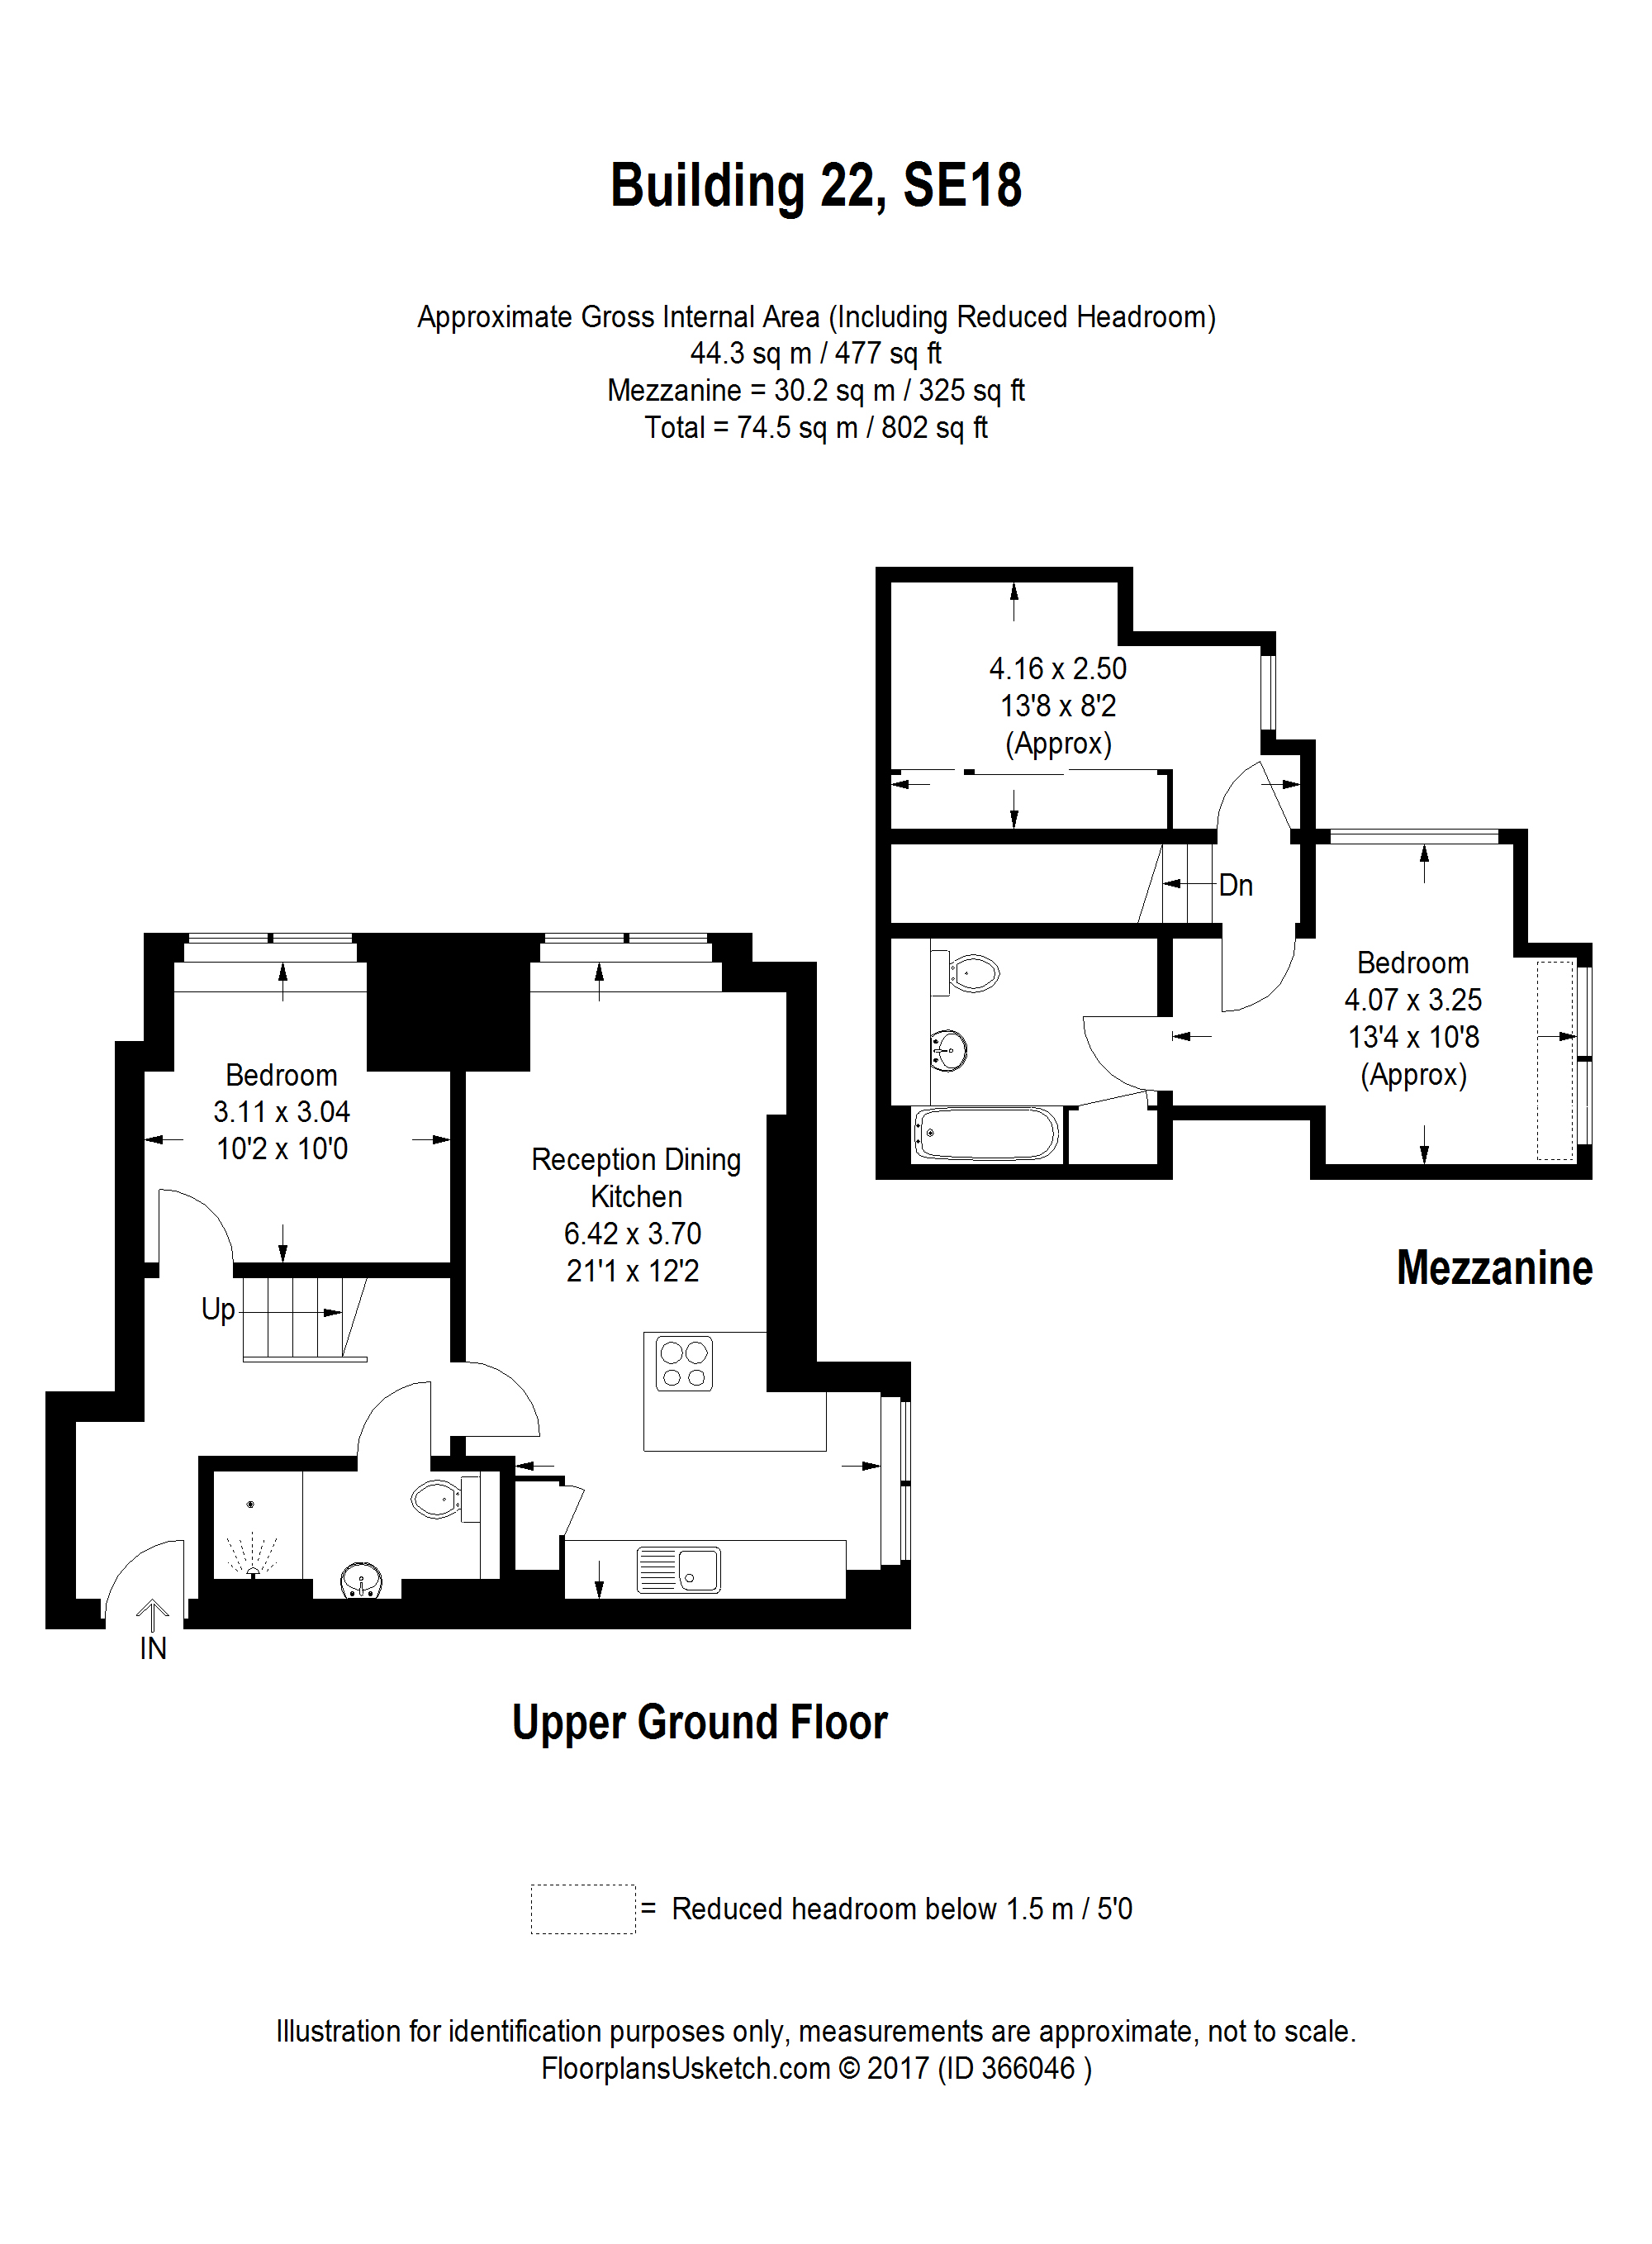 Cadogan road royal arsenal riverside se18 3 bedroom for Up down duplex floor plans